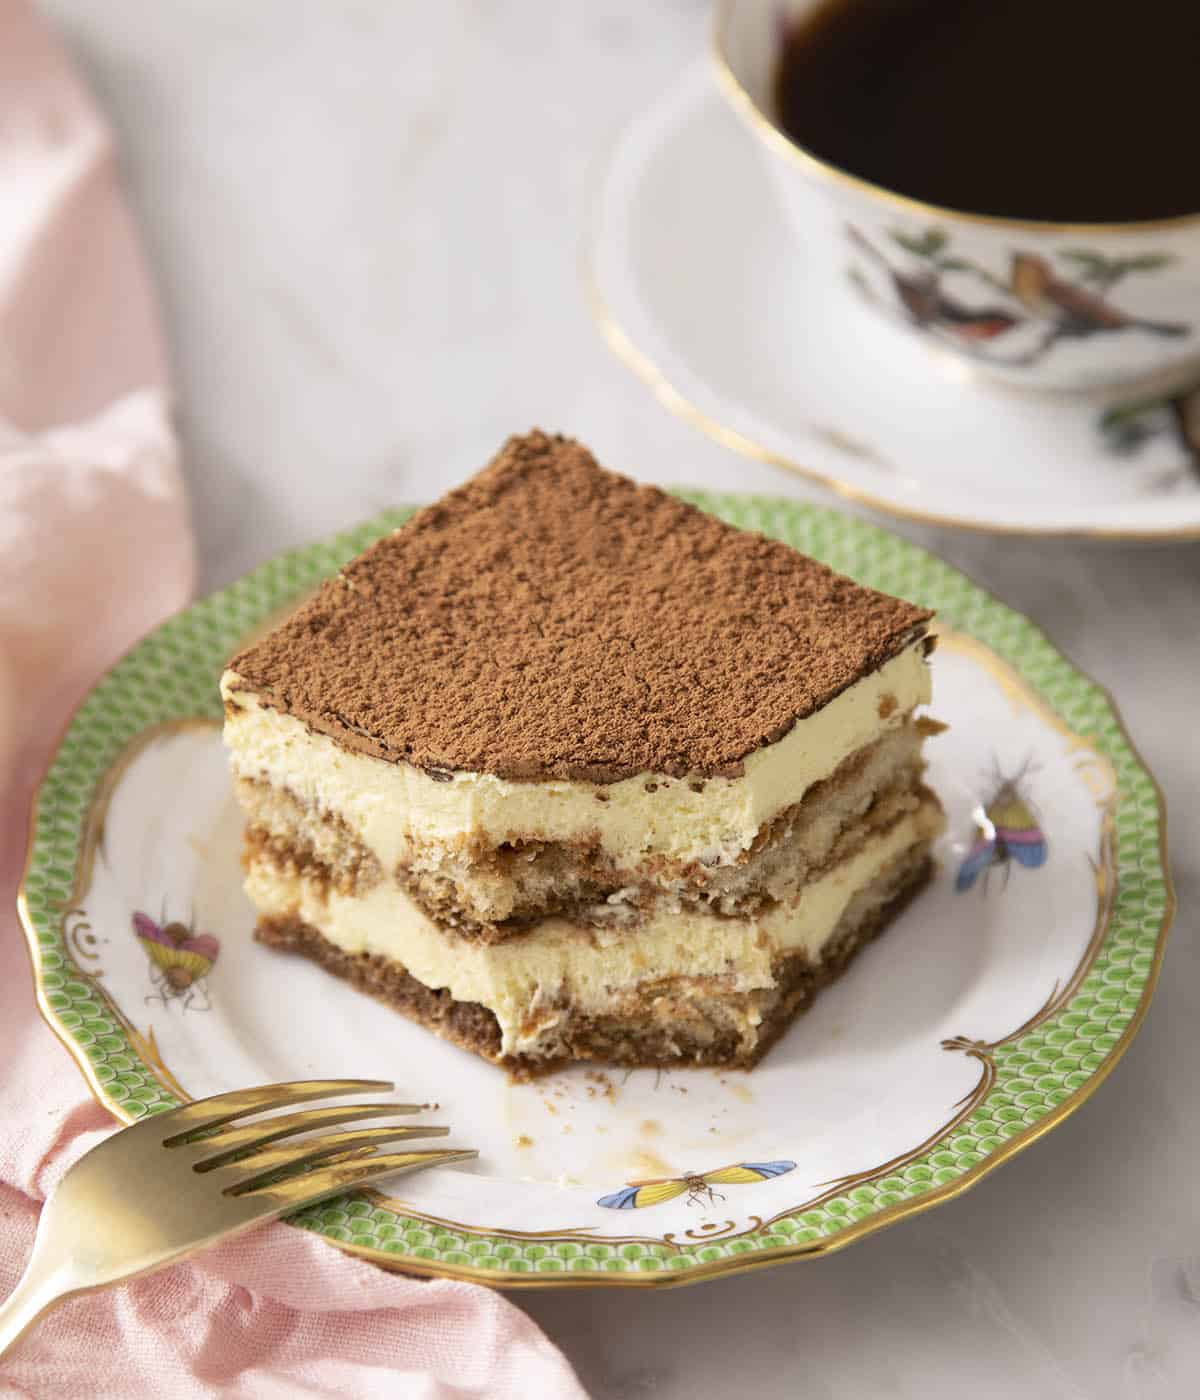 A piece of tiramisu with a bite taken out next to a cup of coffee.